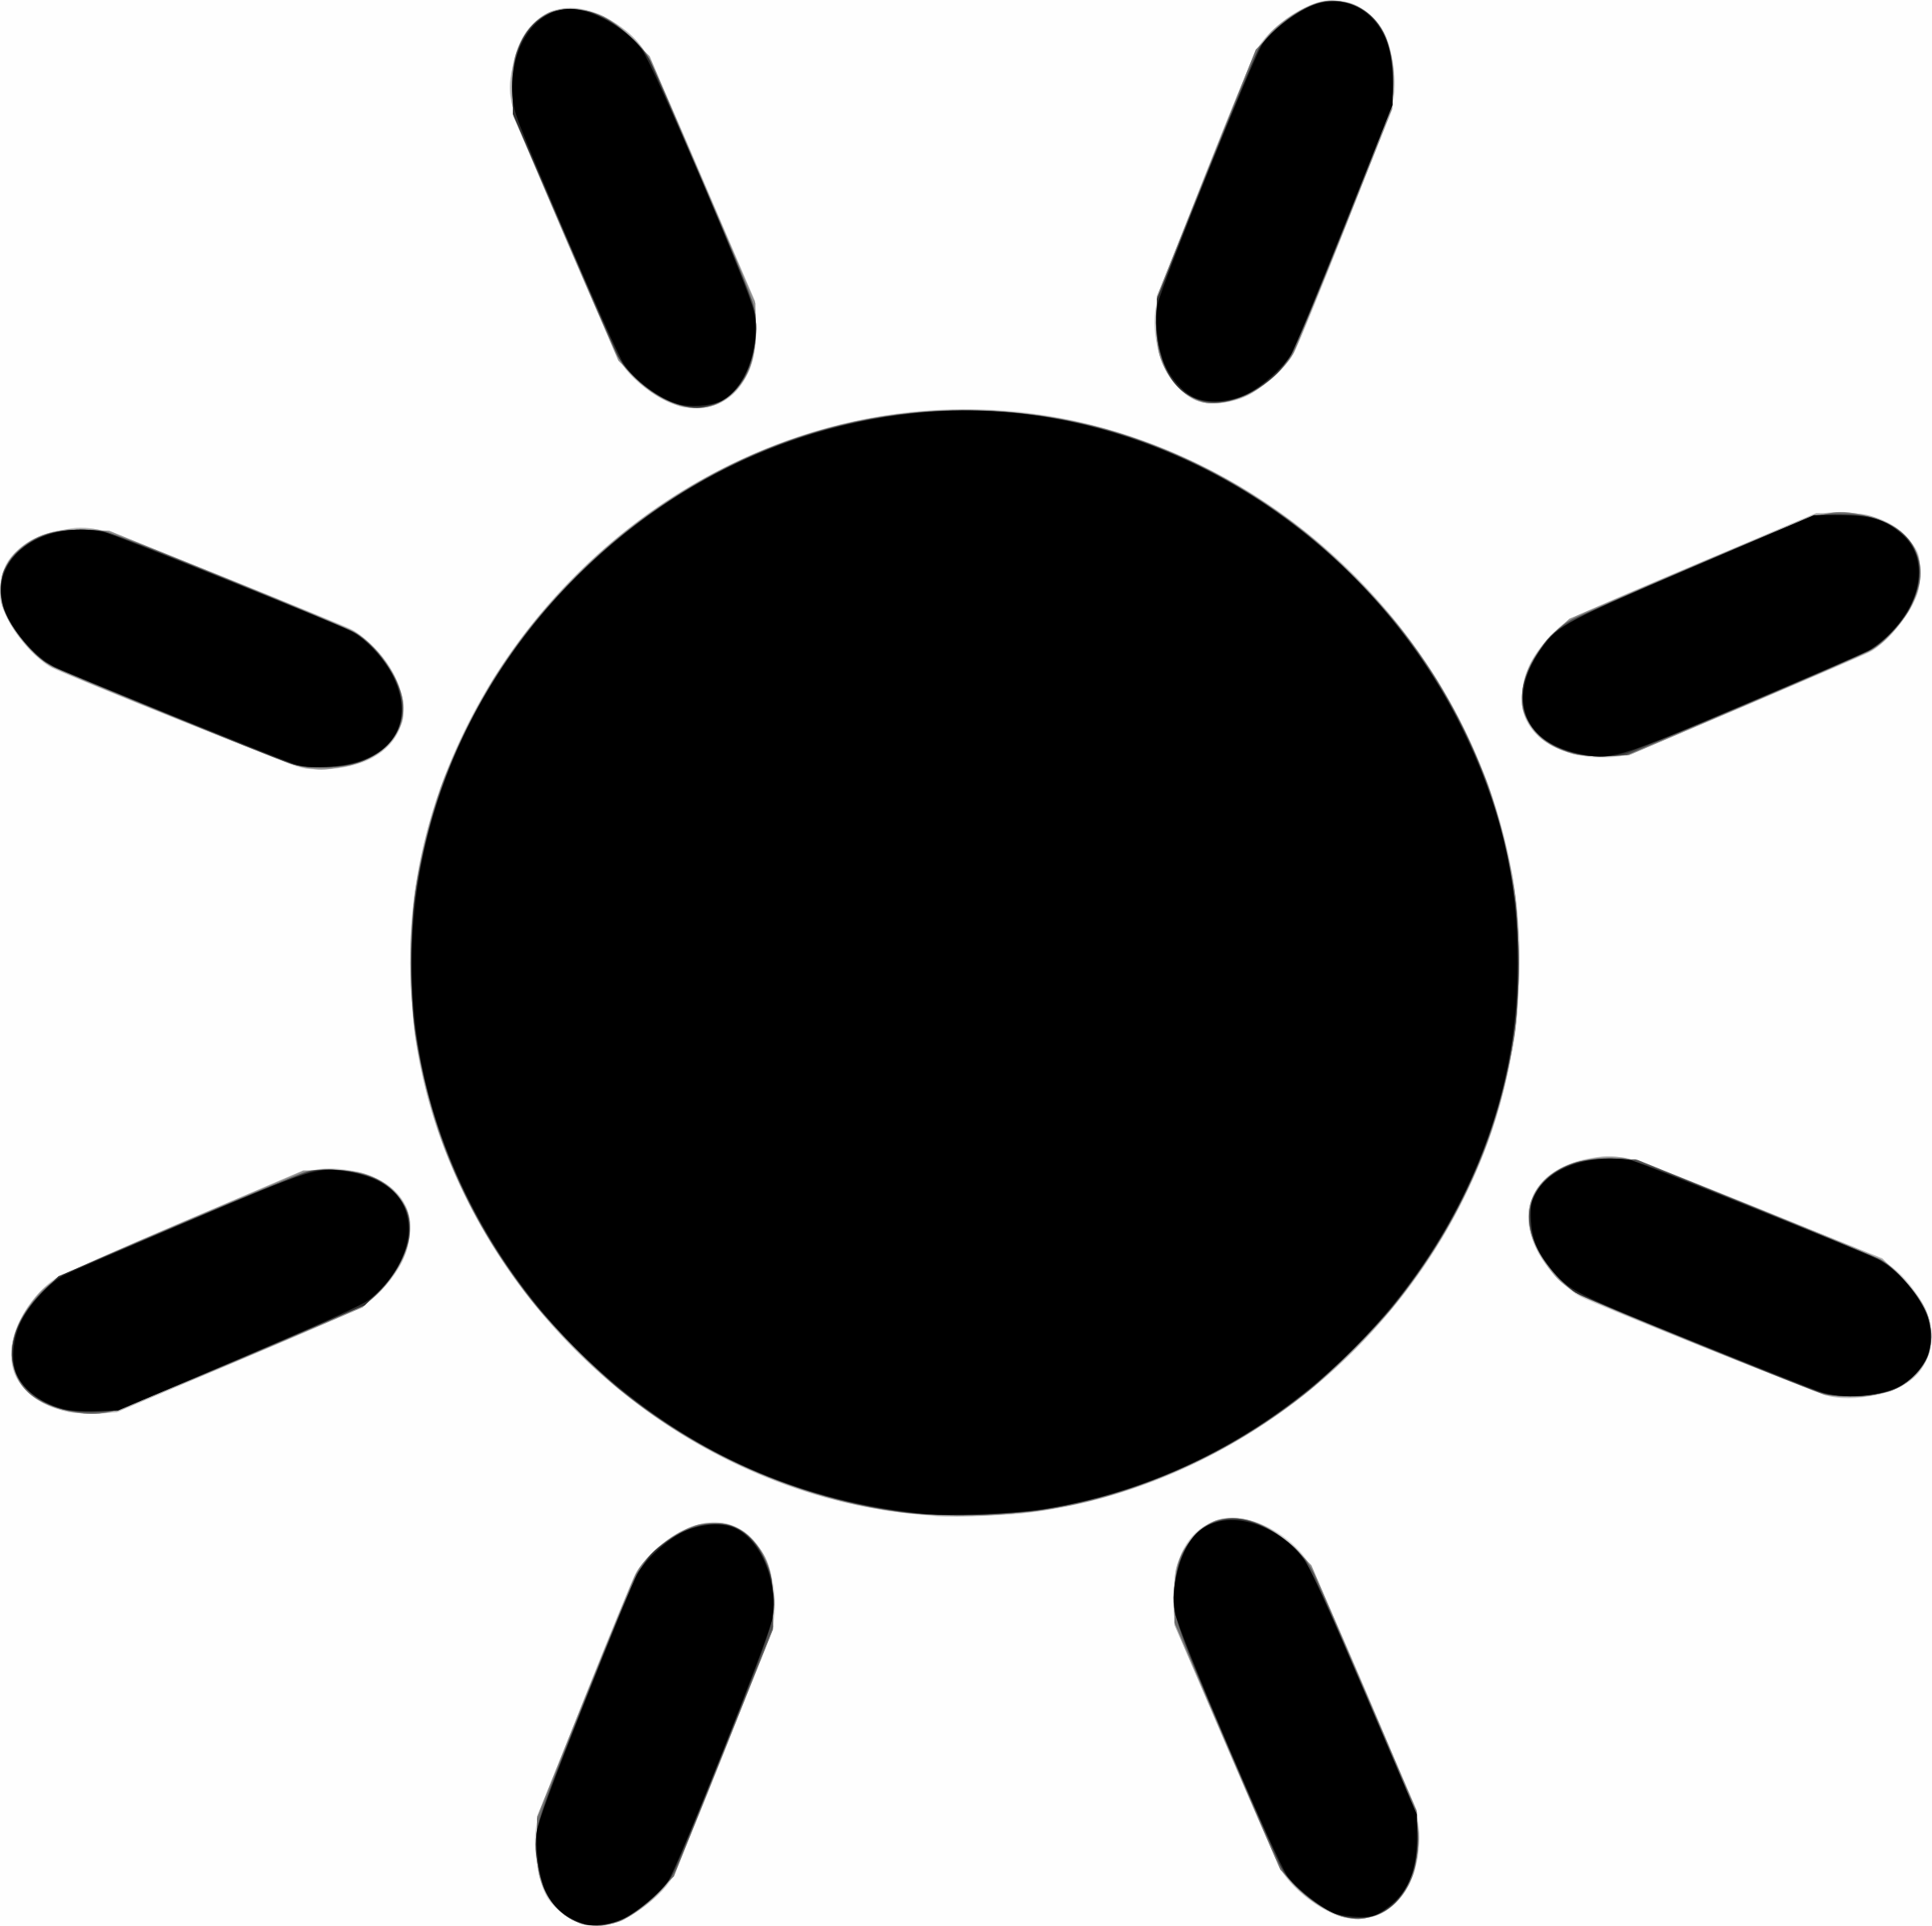 Sun icon by phidari